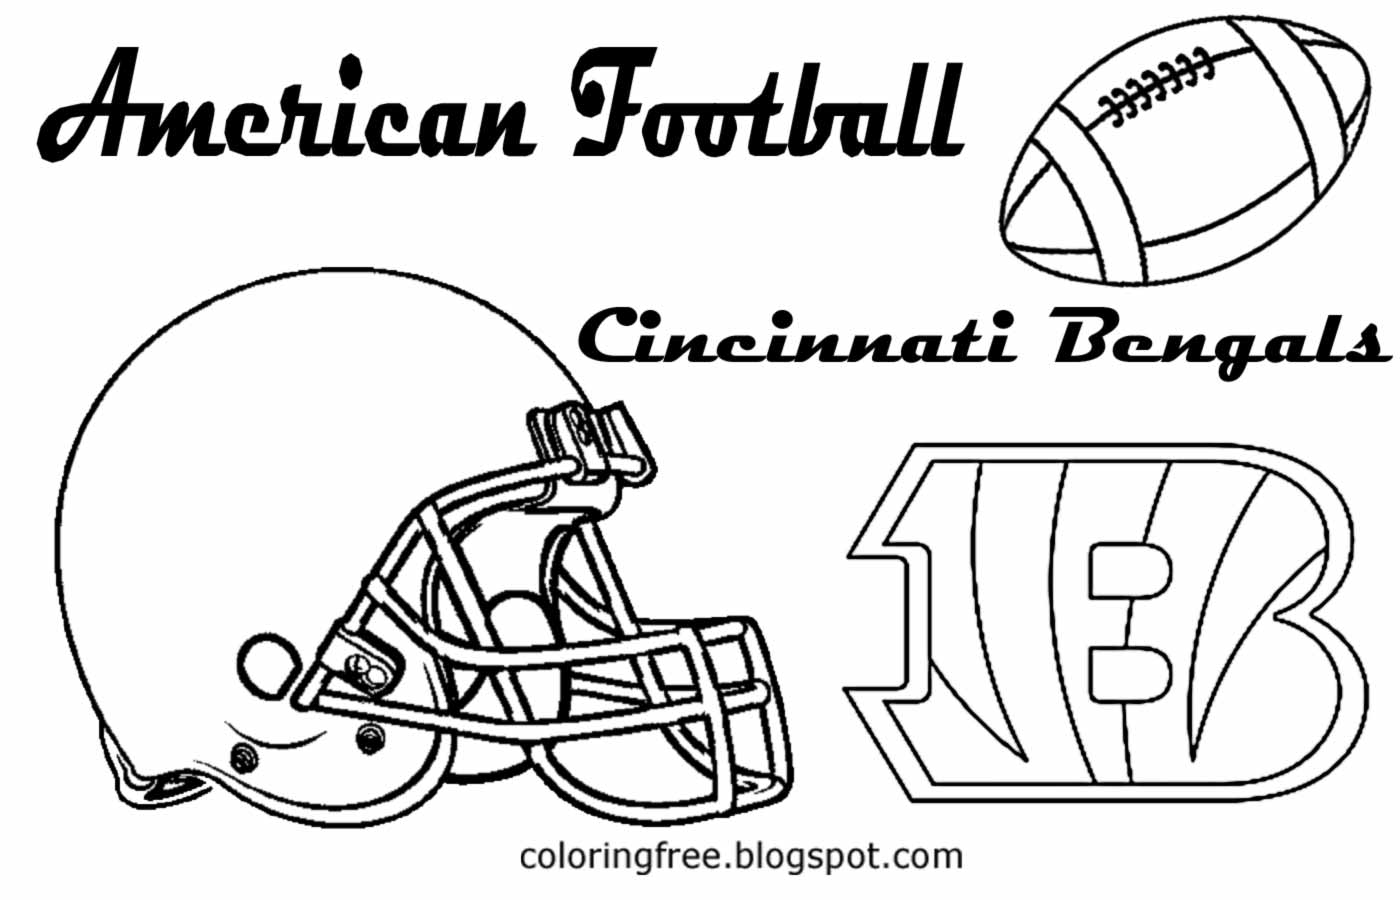 bengal logo coloring pages - photo#35